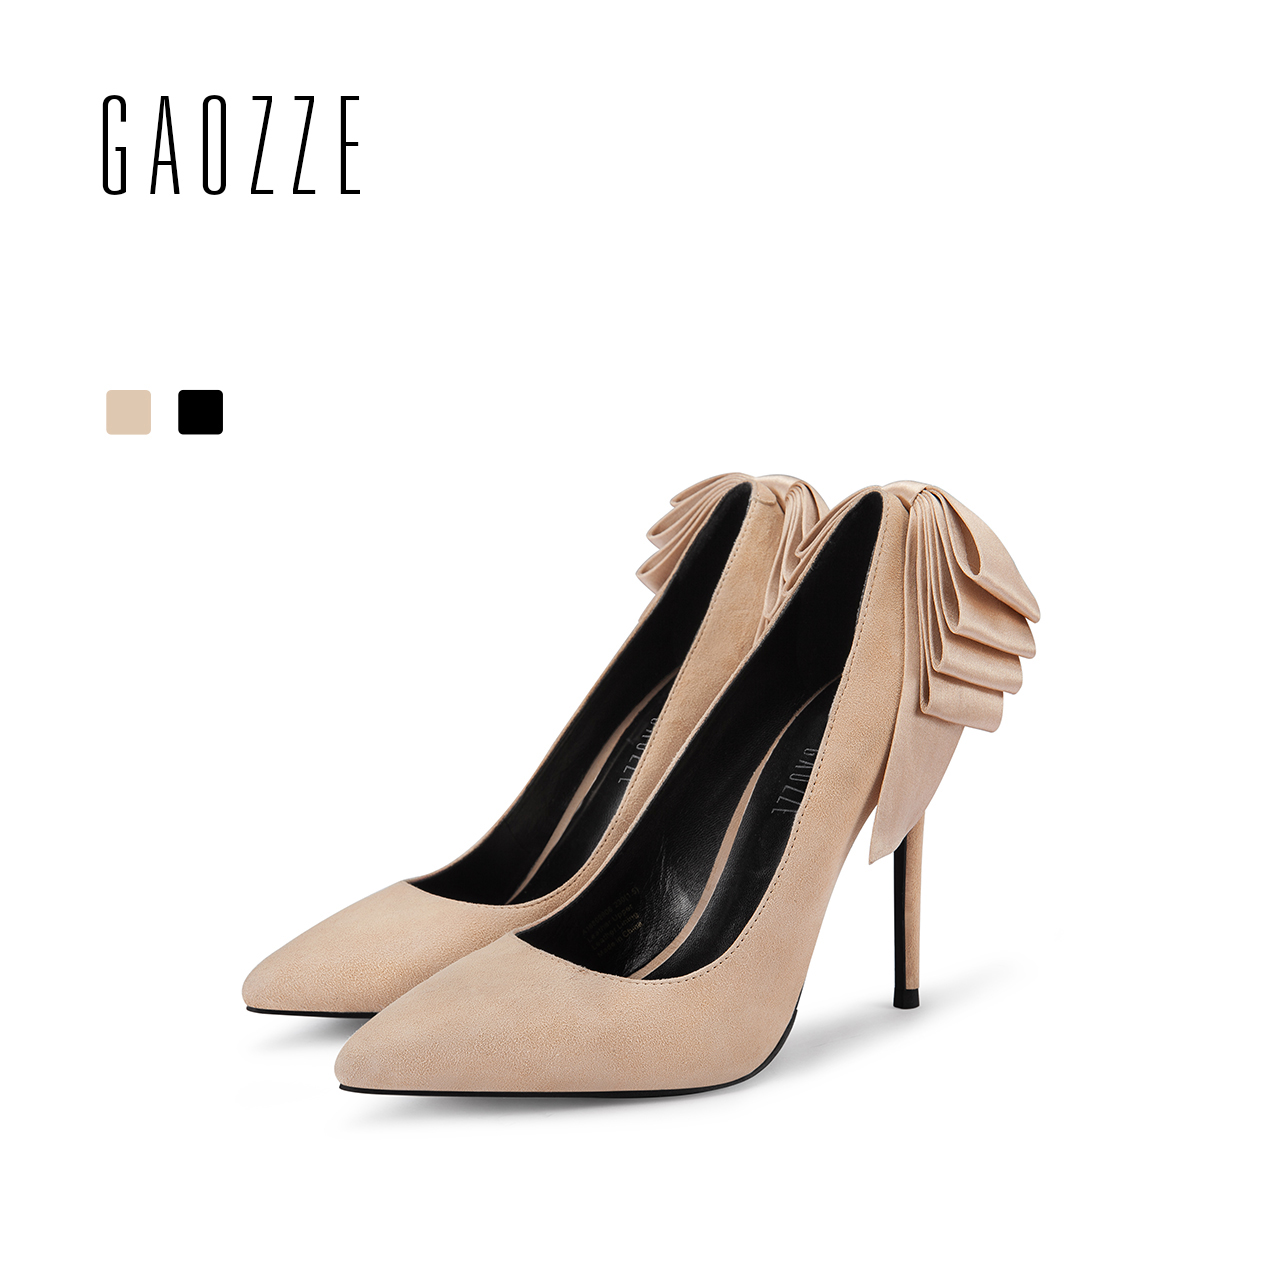 GAOZZE Lovely Bow-Knot Women Party Shoes Pumps 10CM Sexy High Heel Shoes Ladies Pointed Toe Women Suede Leather Pumps Shoes 2018 bigtree spring summer women pumps sweet bow knot high heeled shoes thin pink high heel shoes hollow pointed stiletto elegant 22